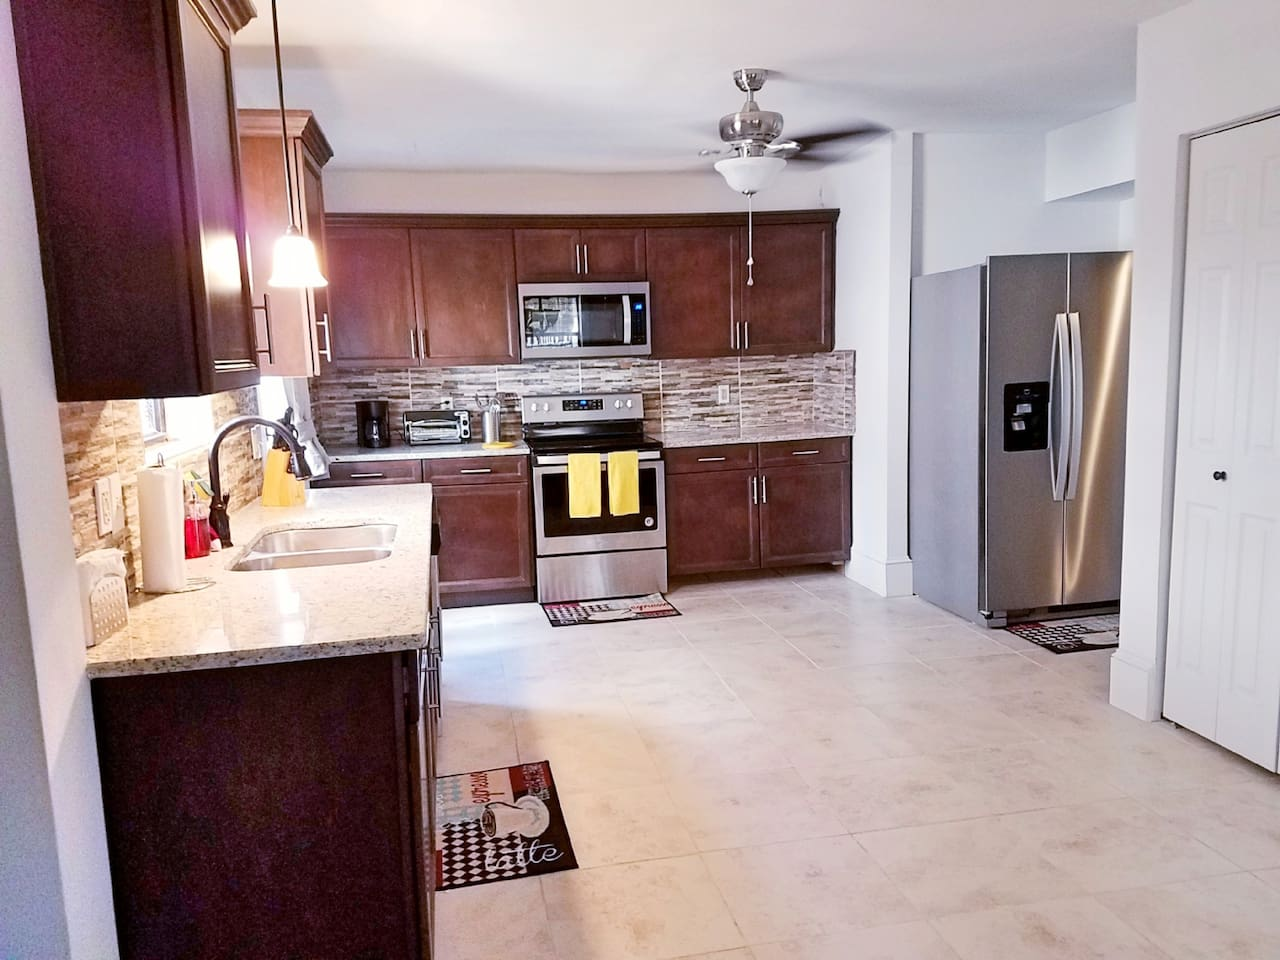 Fully equipped large, open kitchen w/ cookware & dishware